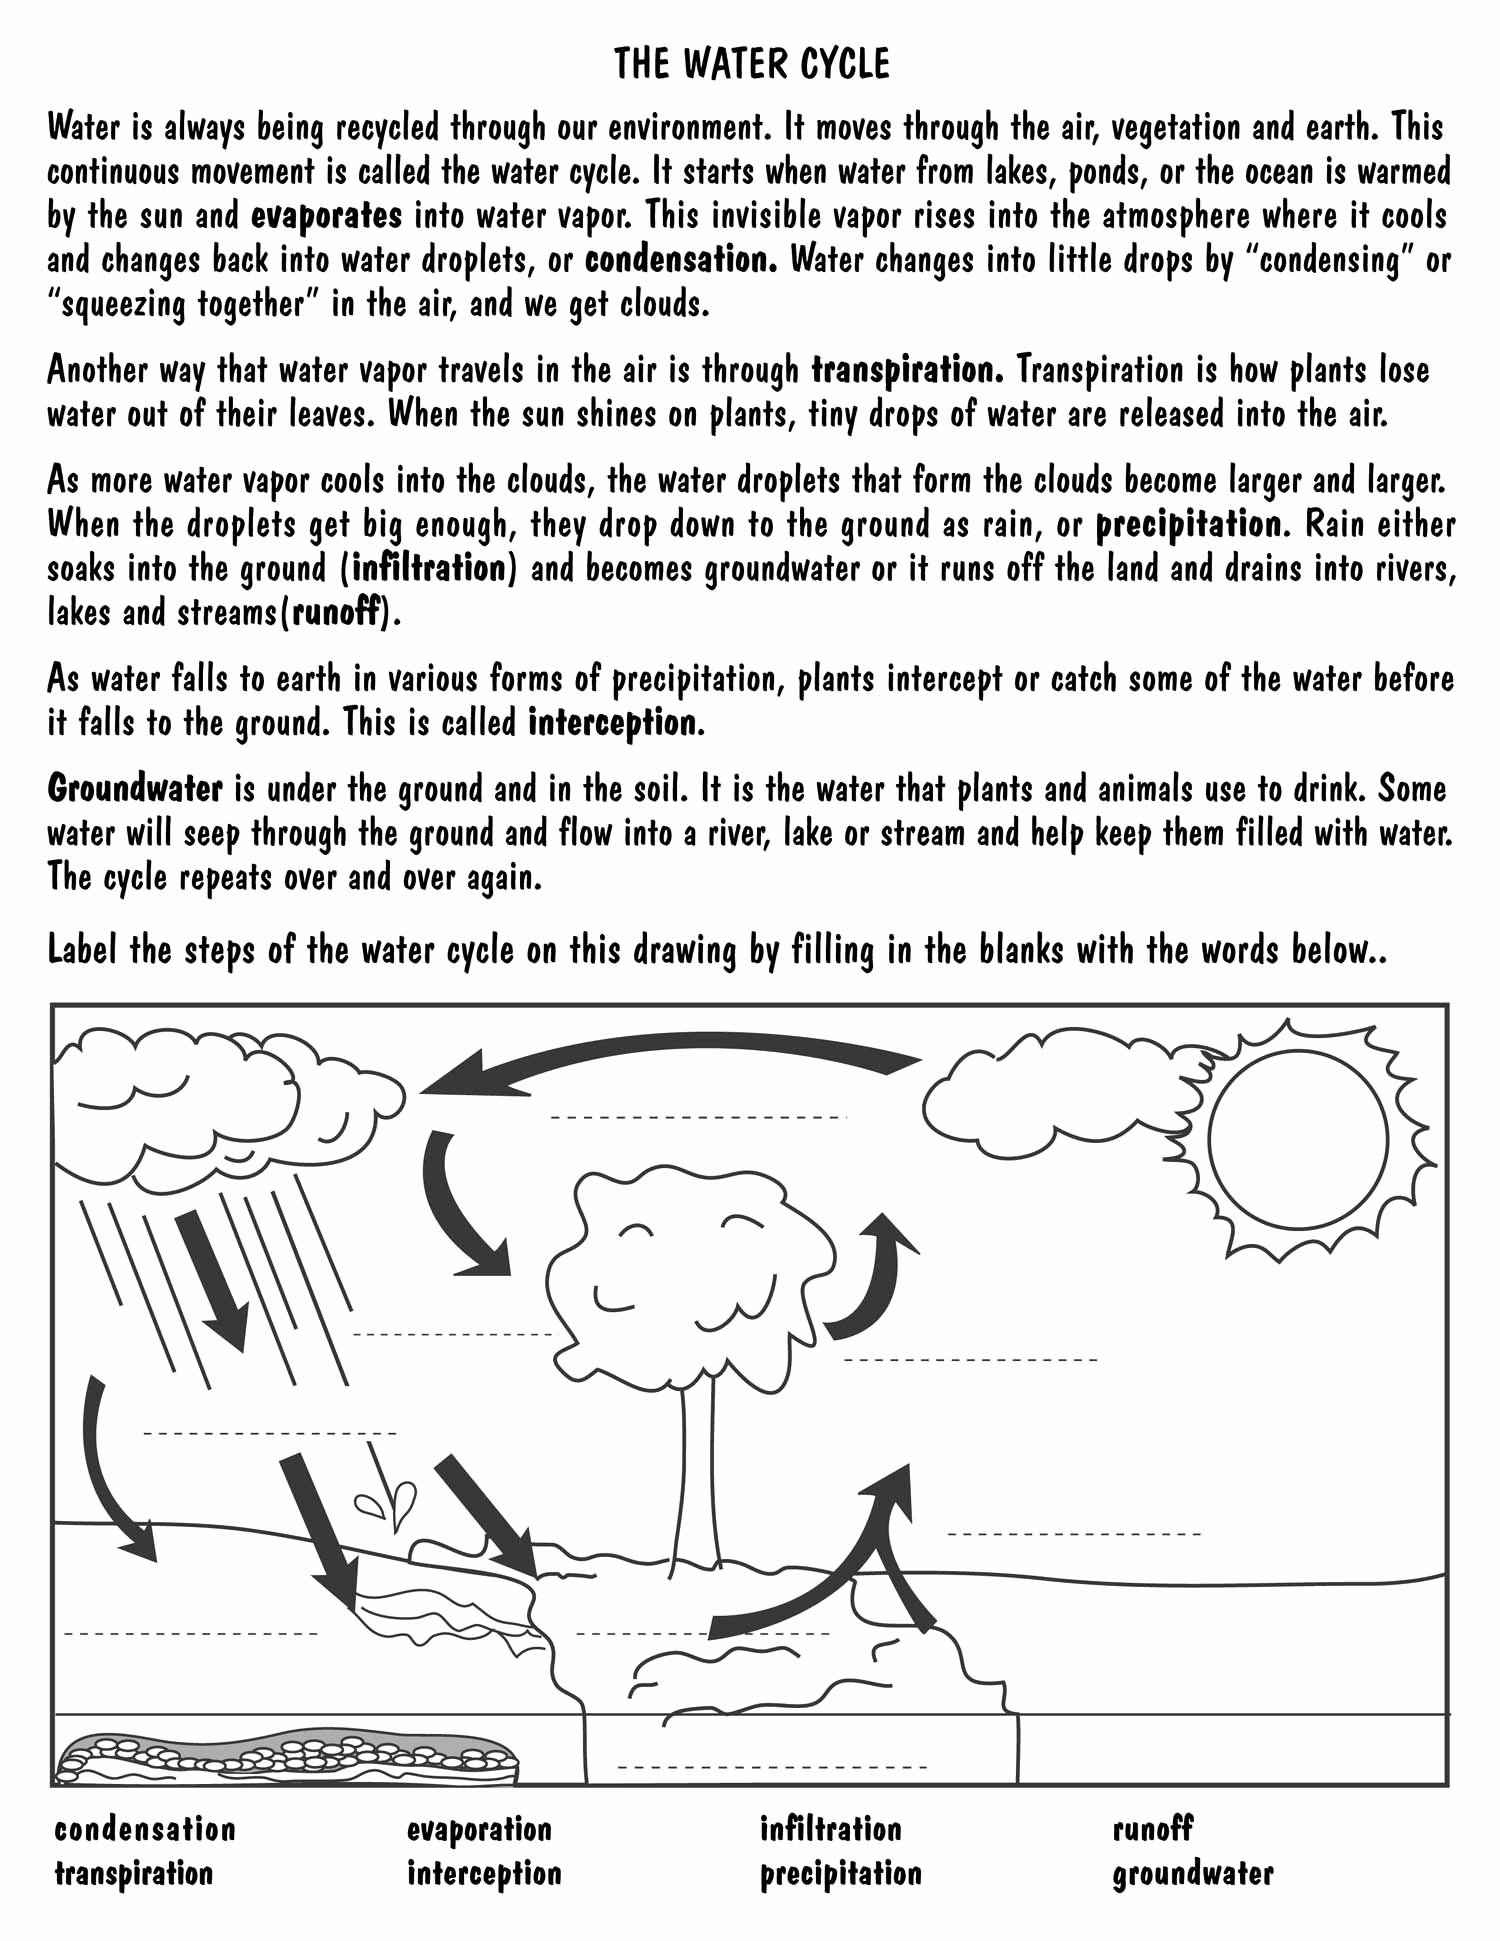 Water Cycle Worksheet Middle School Lovely Printable Water Cycle Diagram